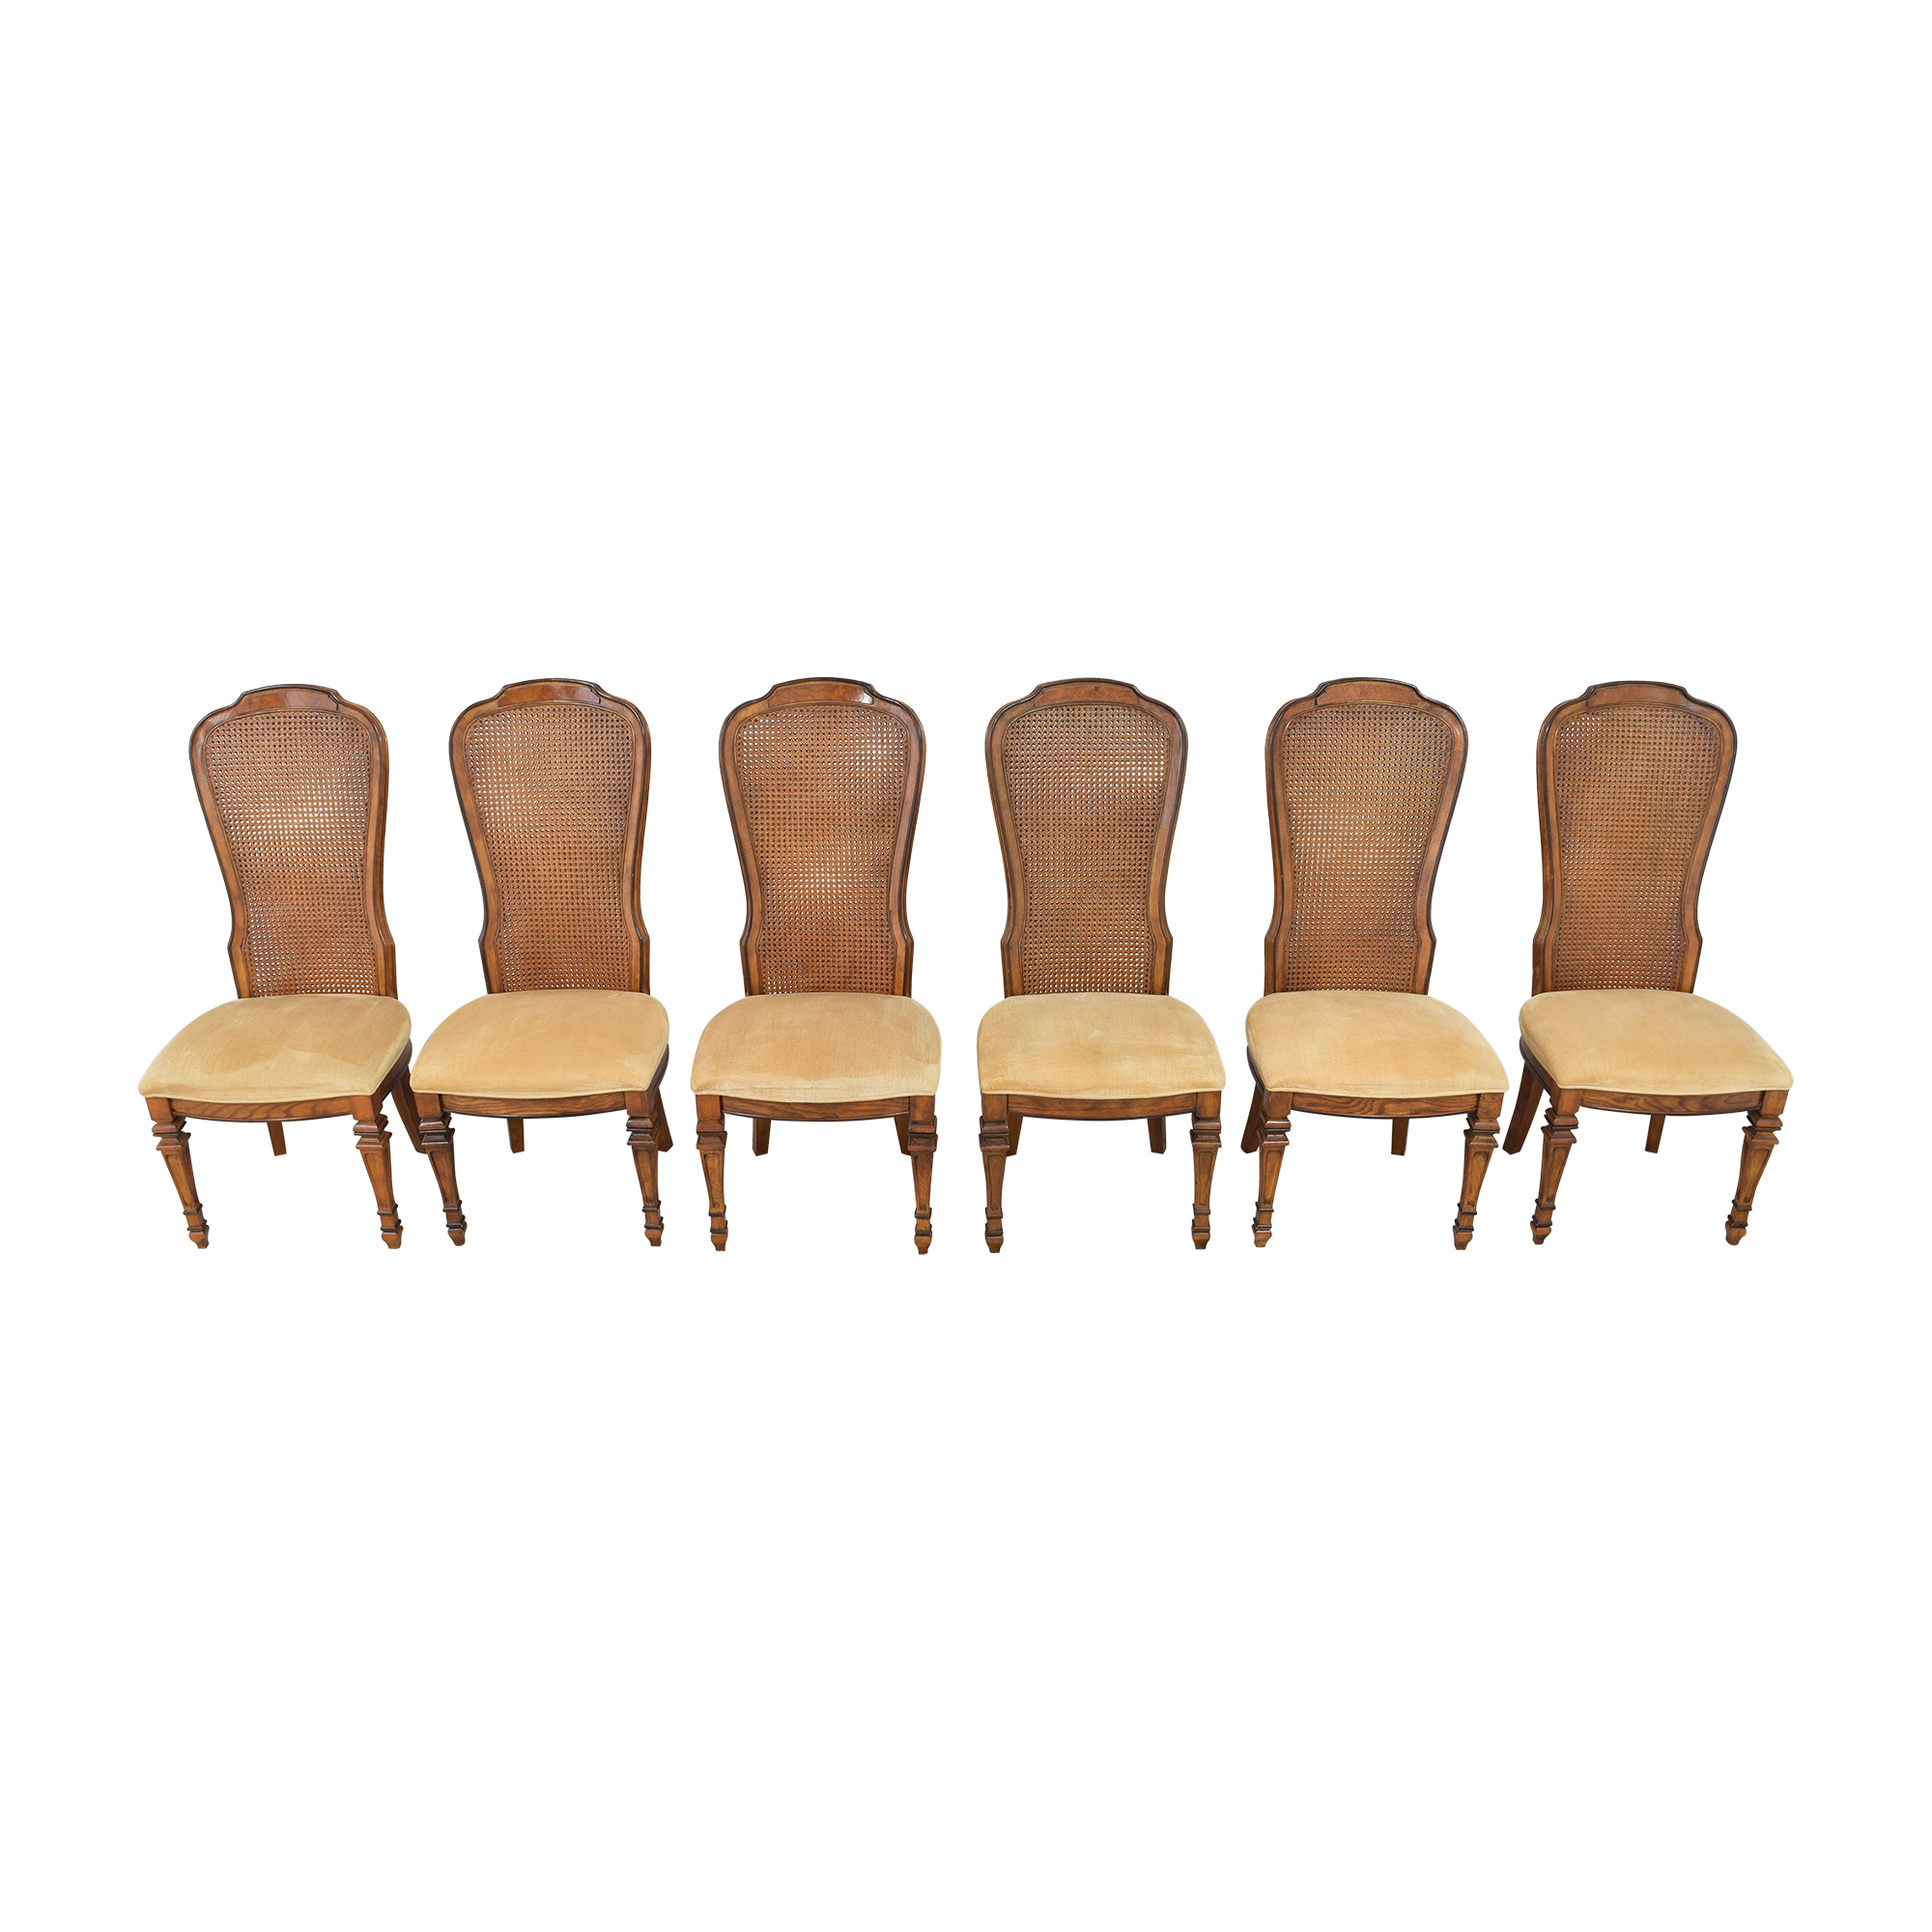 Bernhardt Bernhardt Upholstered Dining Chairs for sale